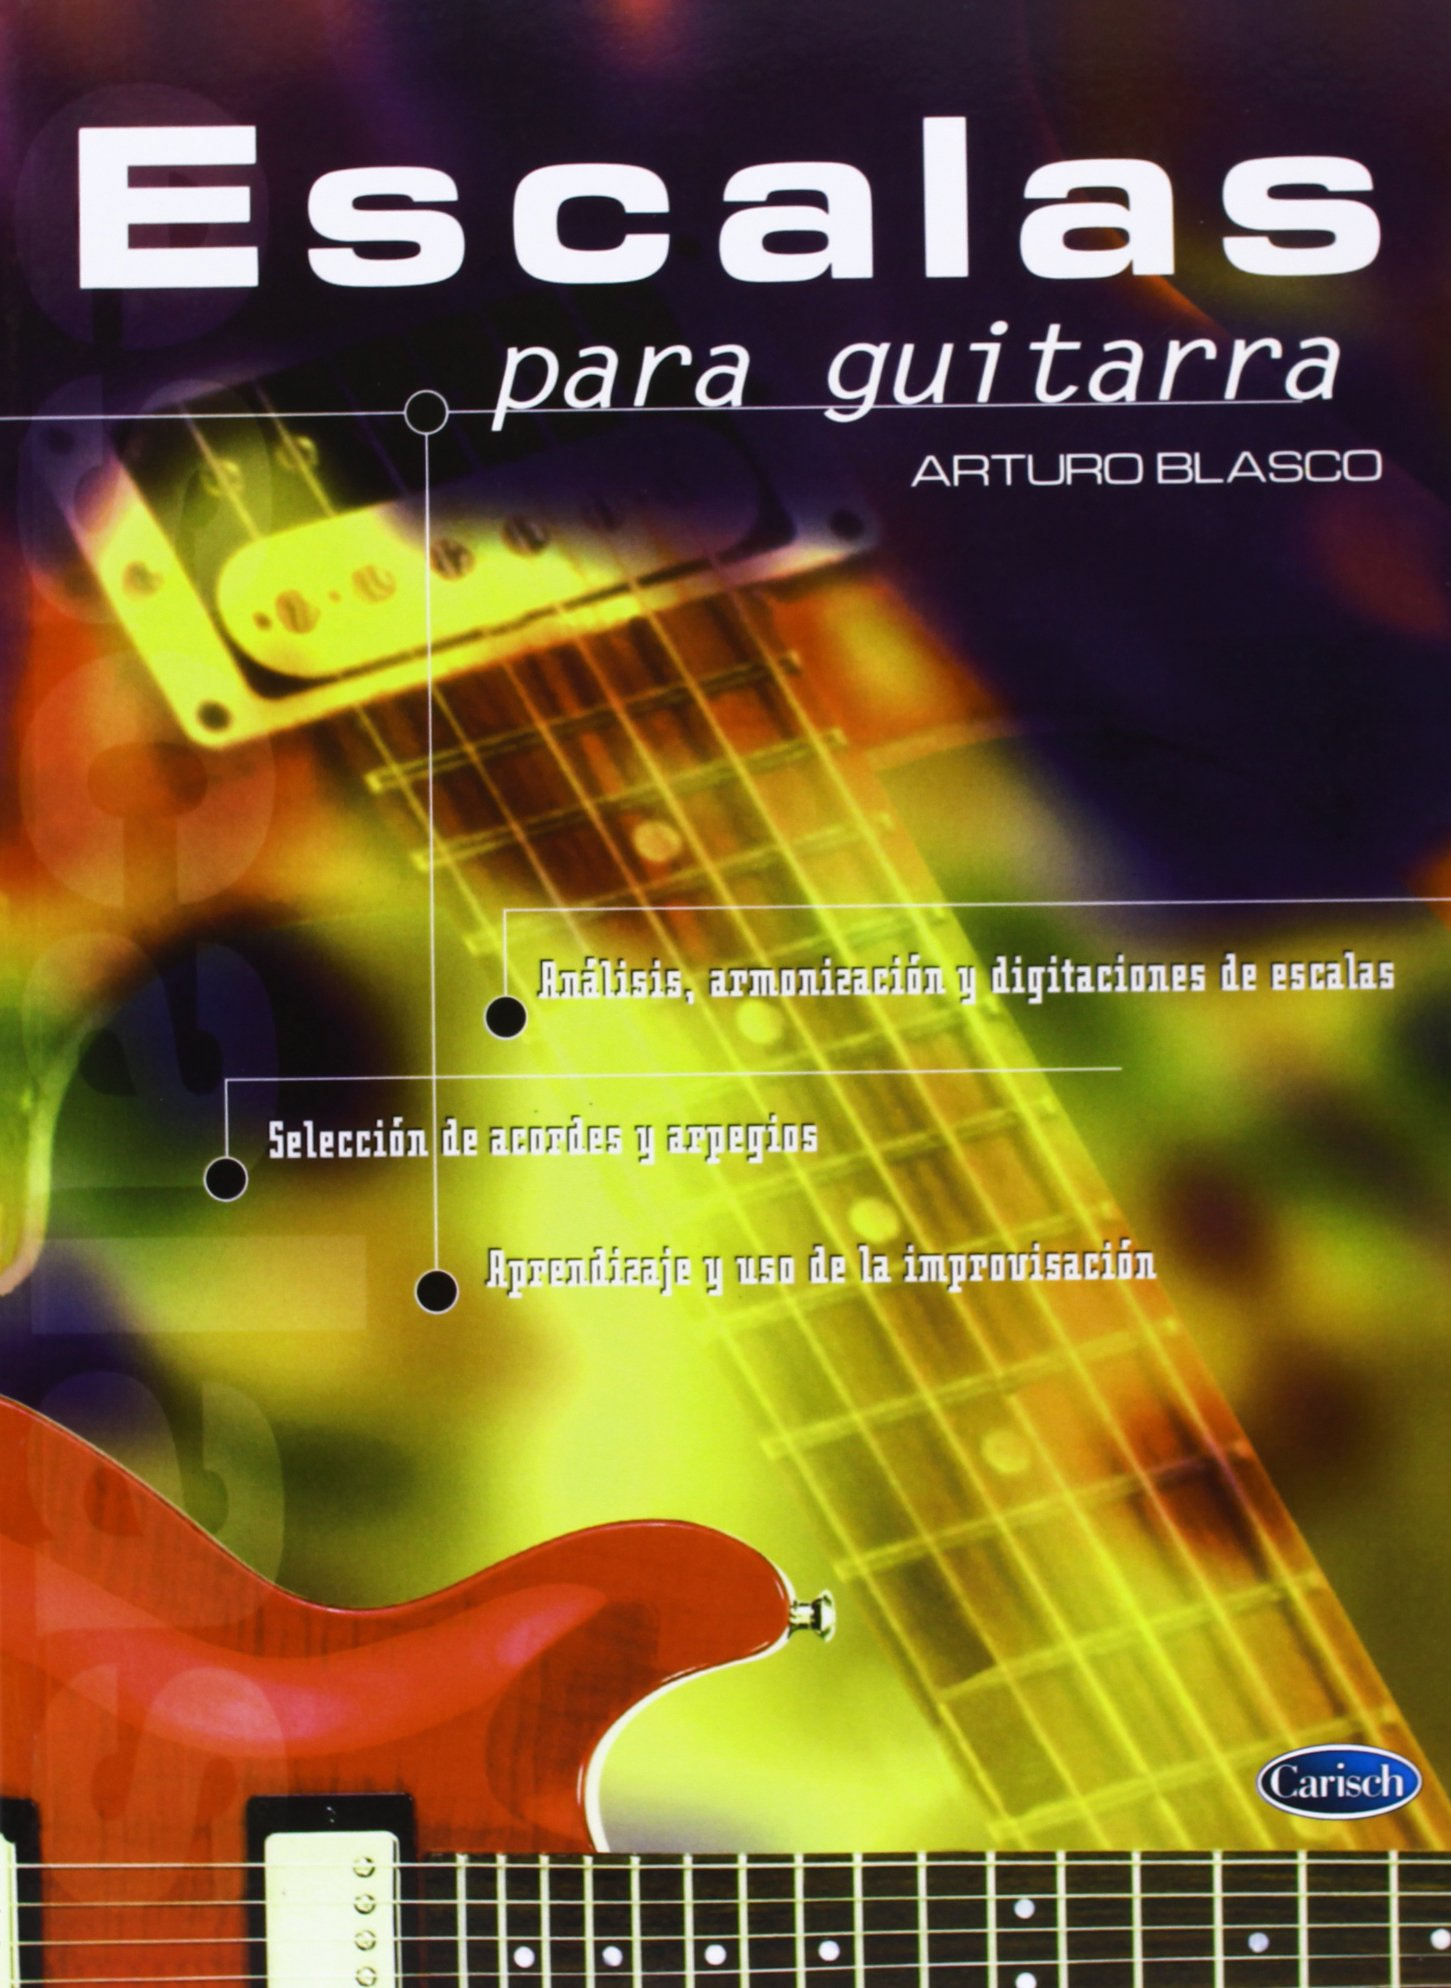 Escalas para Guitarra: Amazon.es: Blasco, Arturo, Guitar: Libros